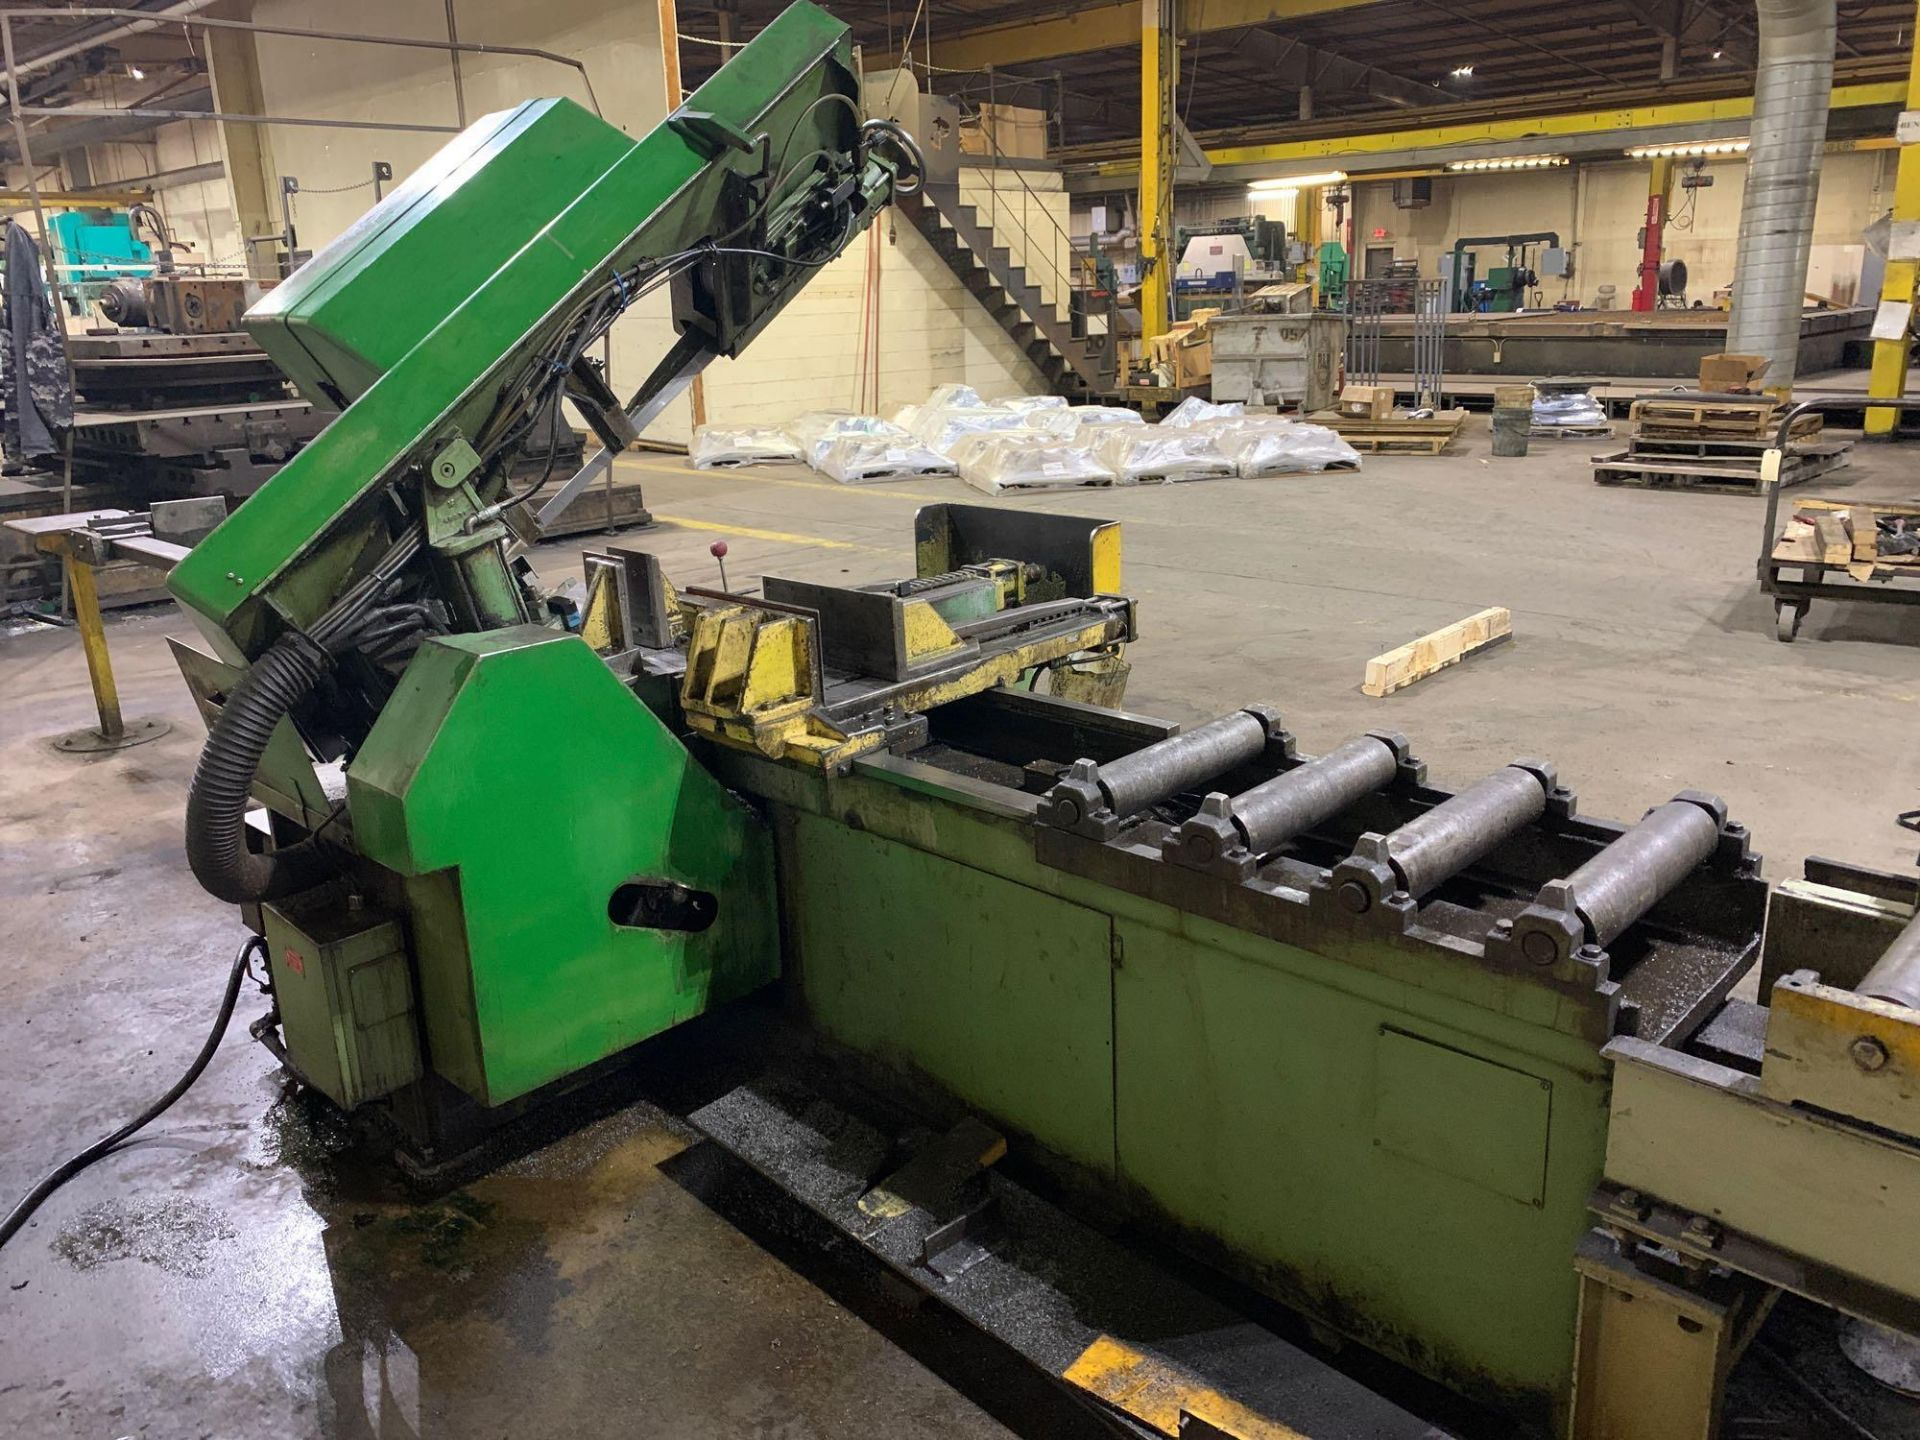 DoAllSemi-Automatic Horizontal Band Saw Model: C-1213a s/n: 412-84212 made in the usa capacity: rec - Image 13 of 16